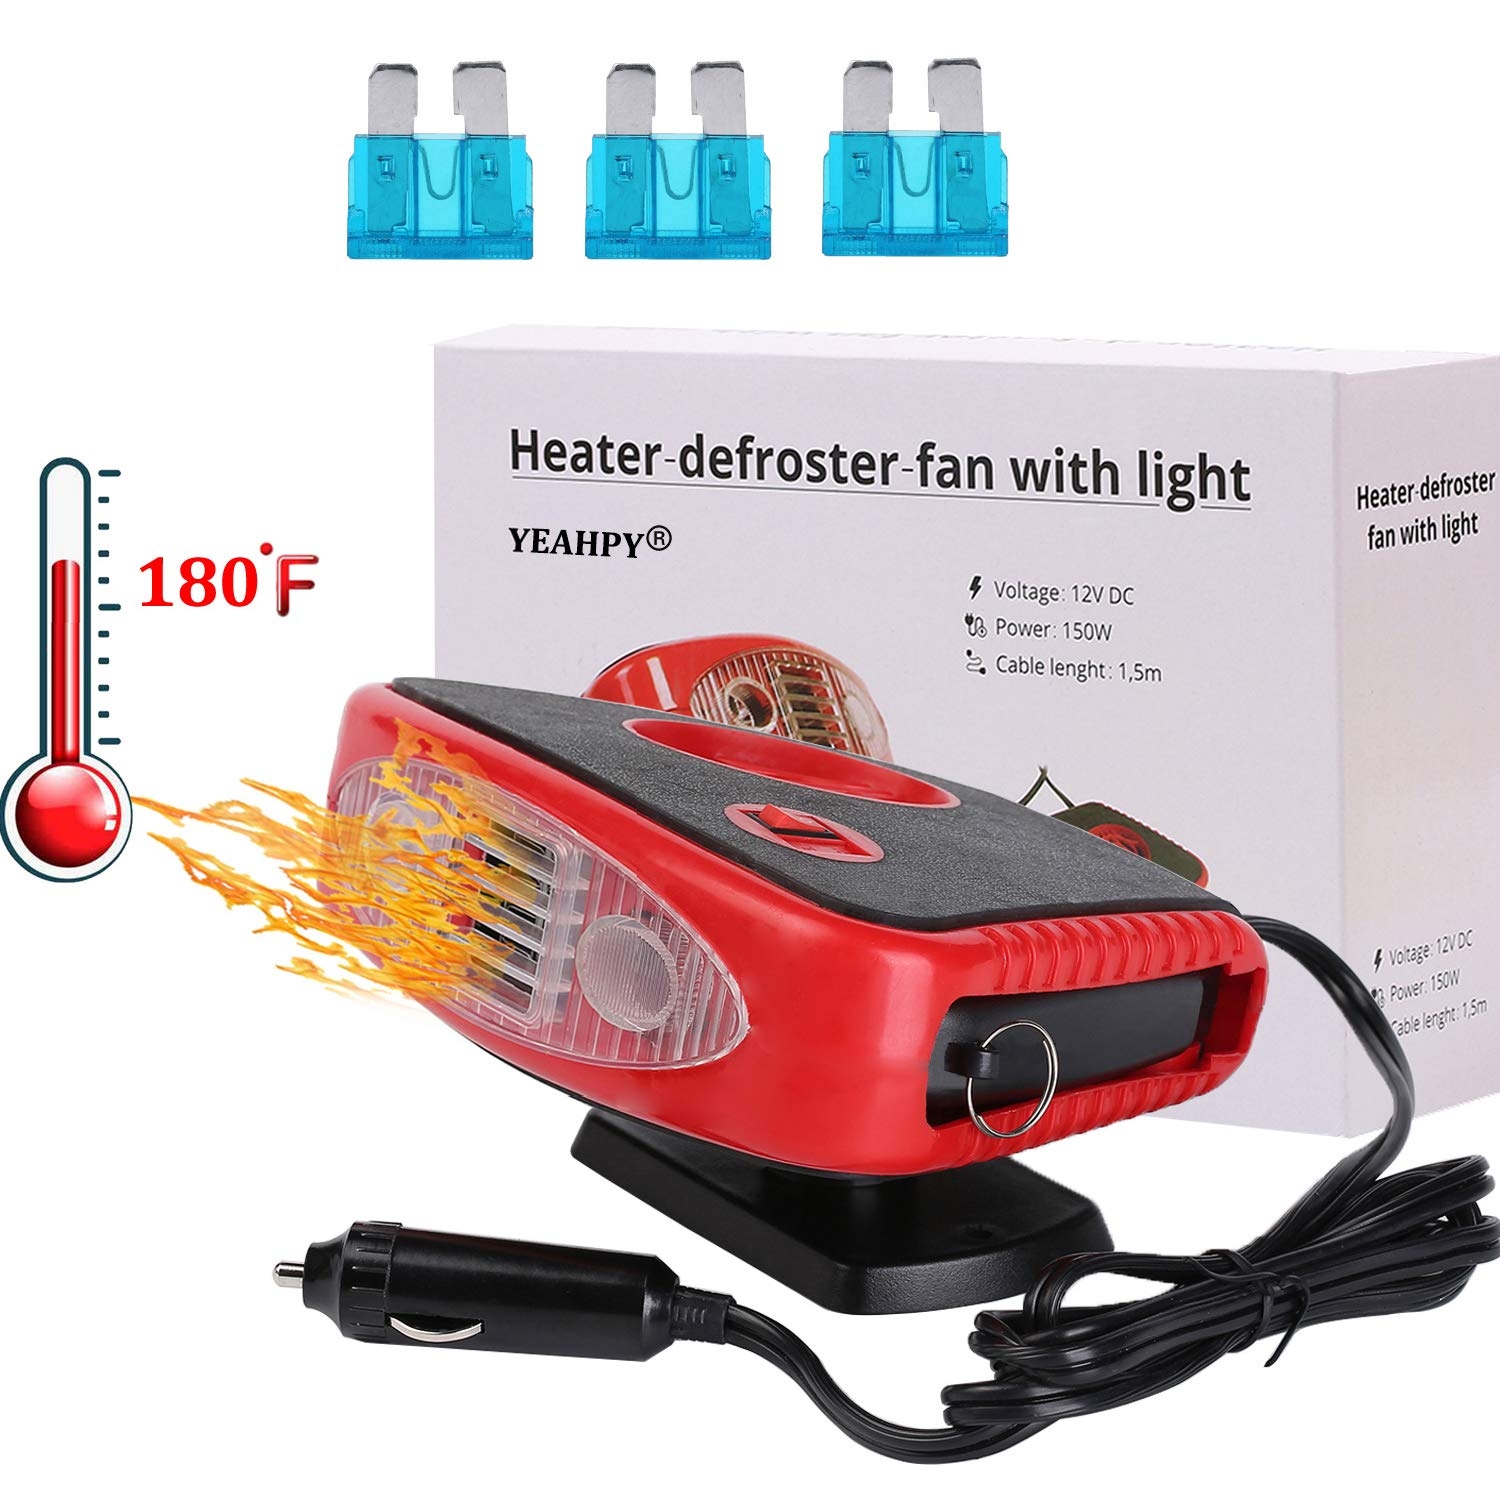 Windshield Car Heater - Portable Car Defroster Defogger 12V Truck Car Heat Cooling Fan 150W 3-Outlet Plug in Cigarette Lighter